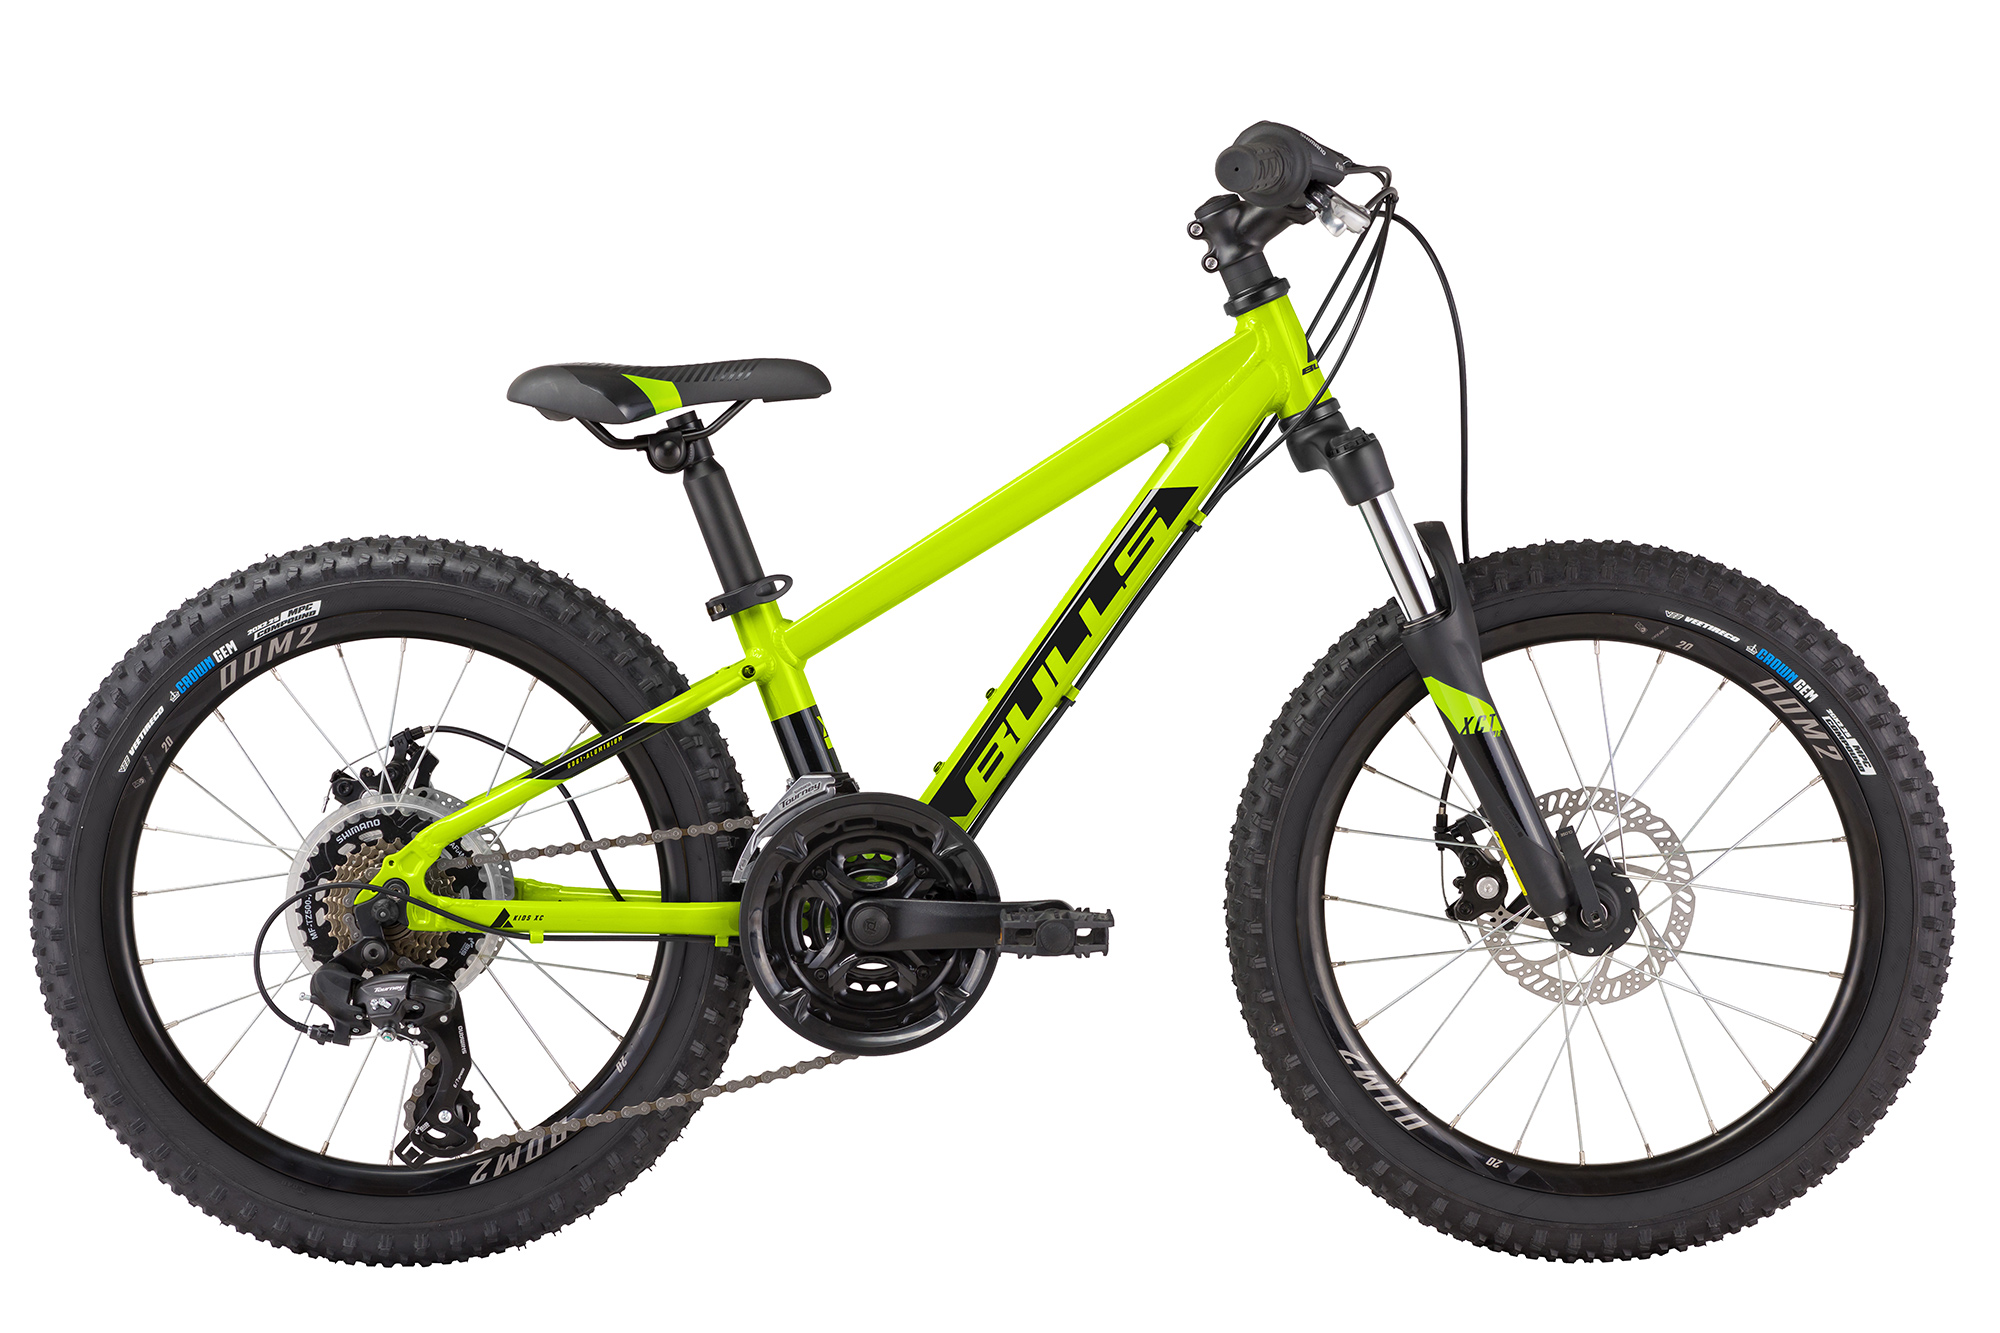 BULLS Tokee 20 Disc - Jugend-MTB metallic lime - 2021